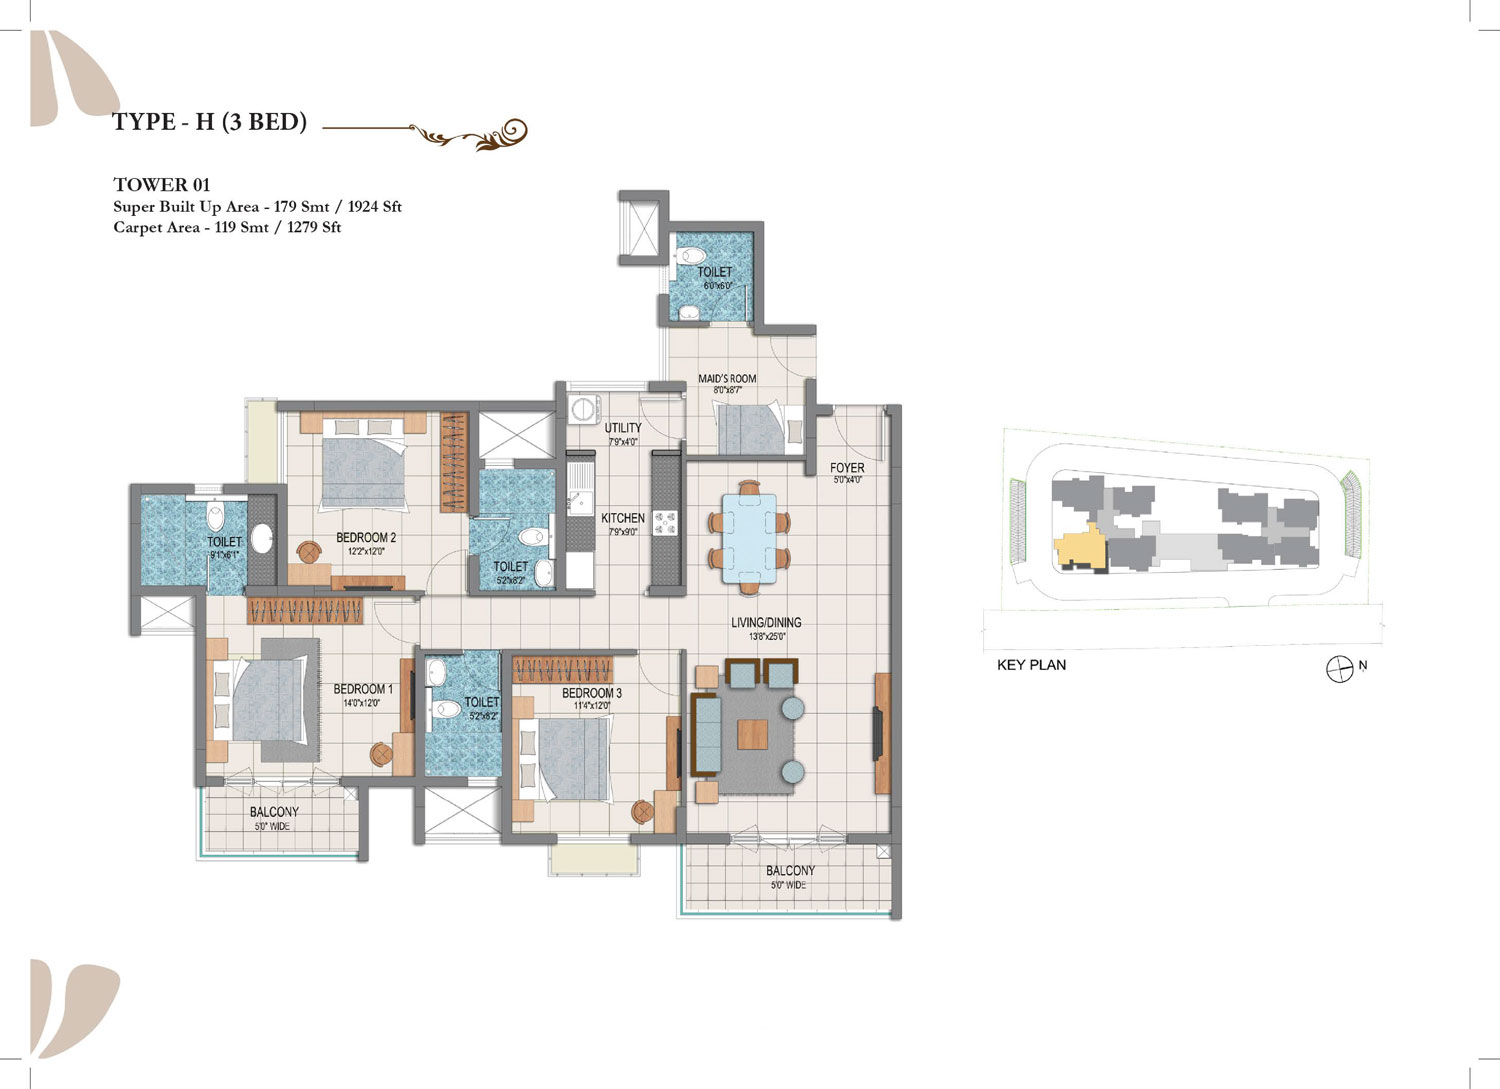 Type H - 3 Bed - 1924 Sq Ft